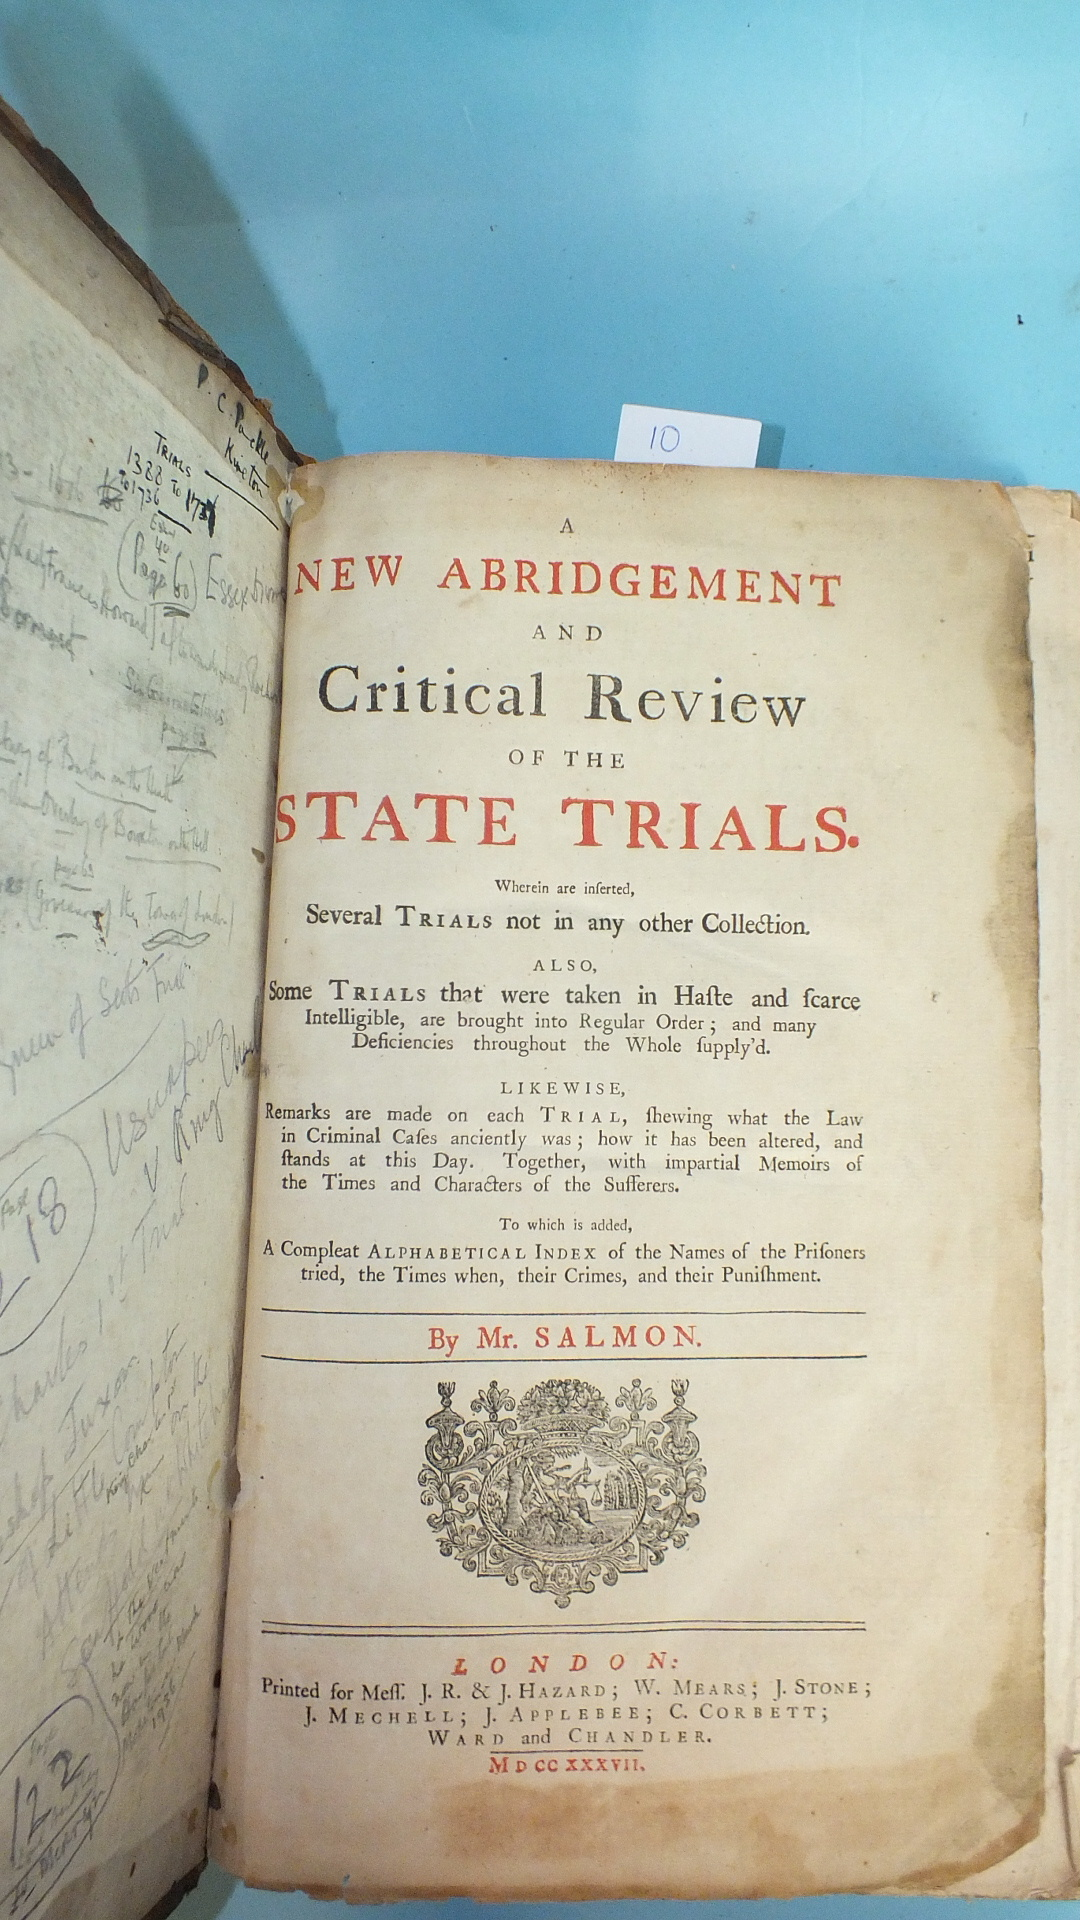 Lot 9 - Salmon, (Thomas), A New Abridgement and Critical Review of the State Trials, vig tp, front bd, tp